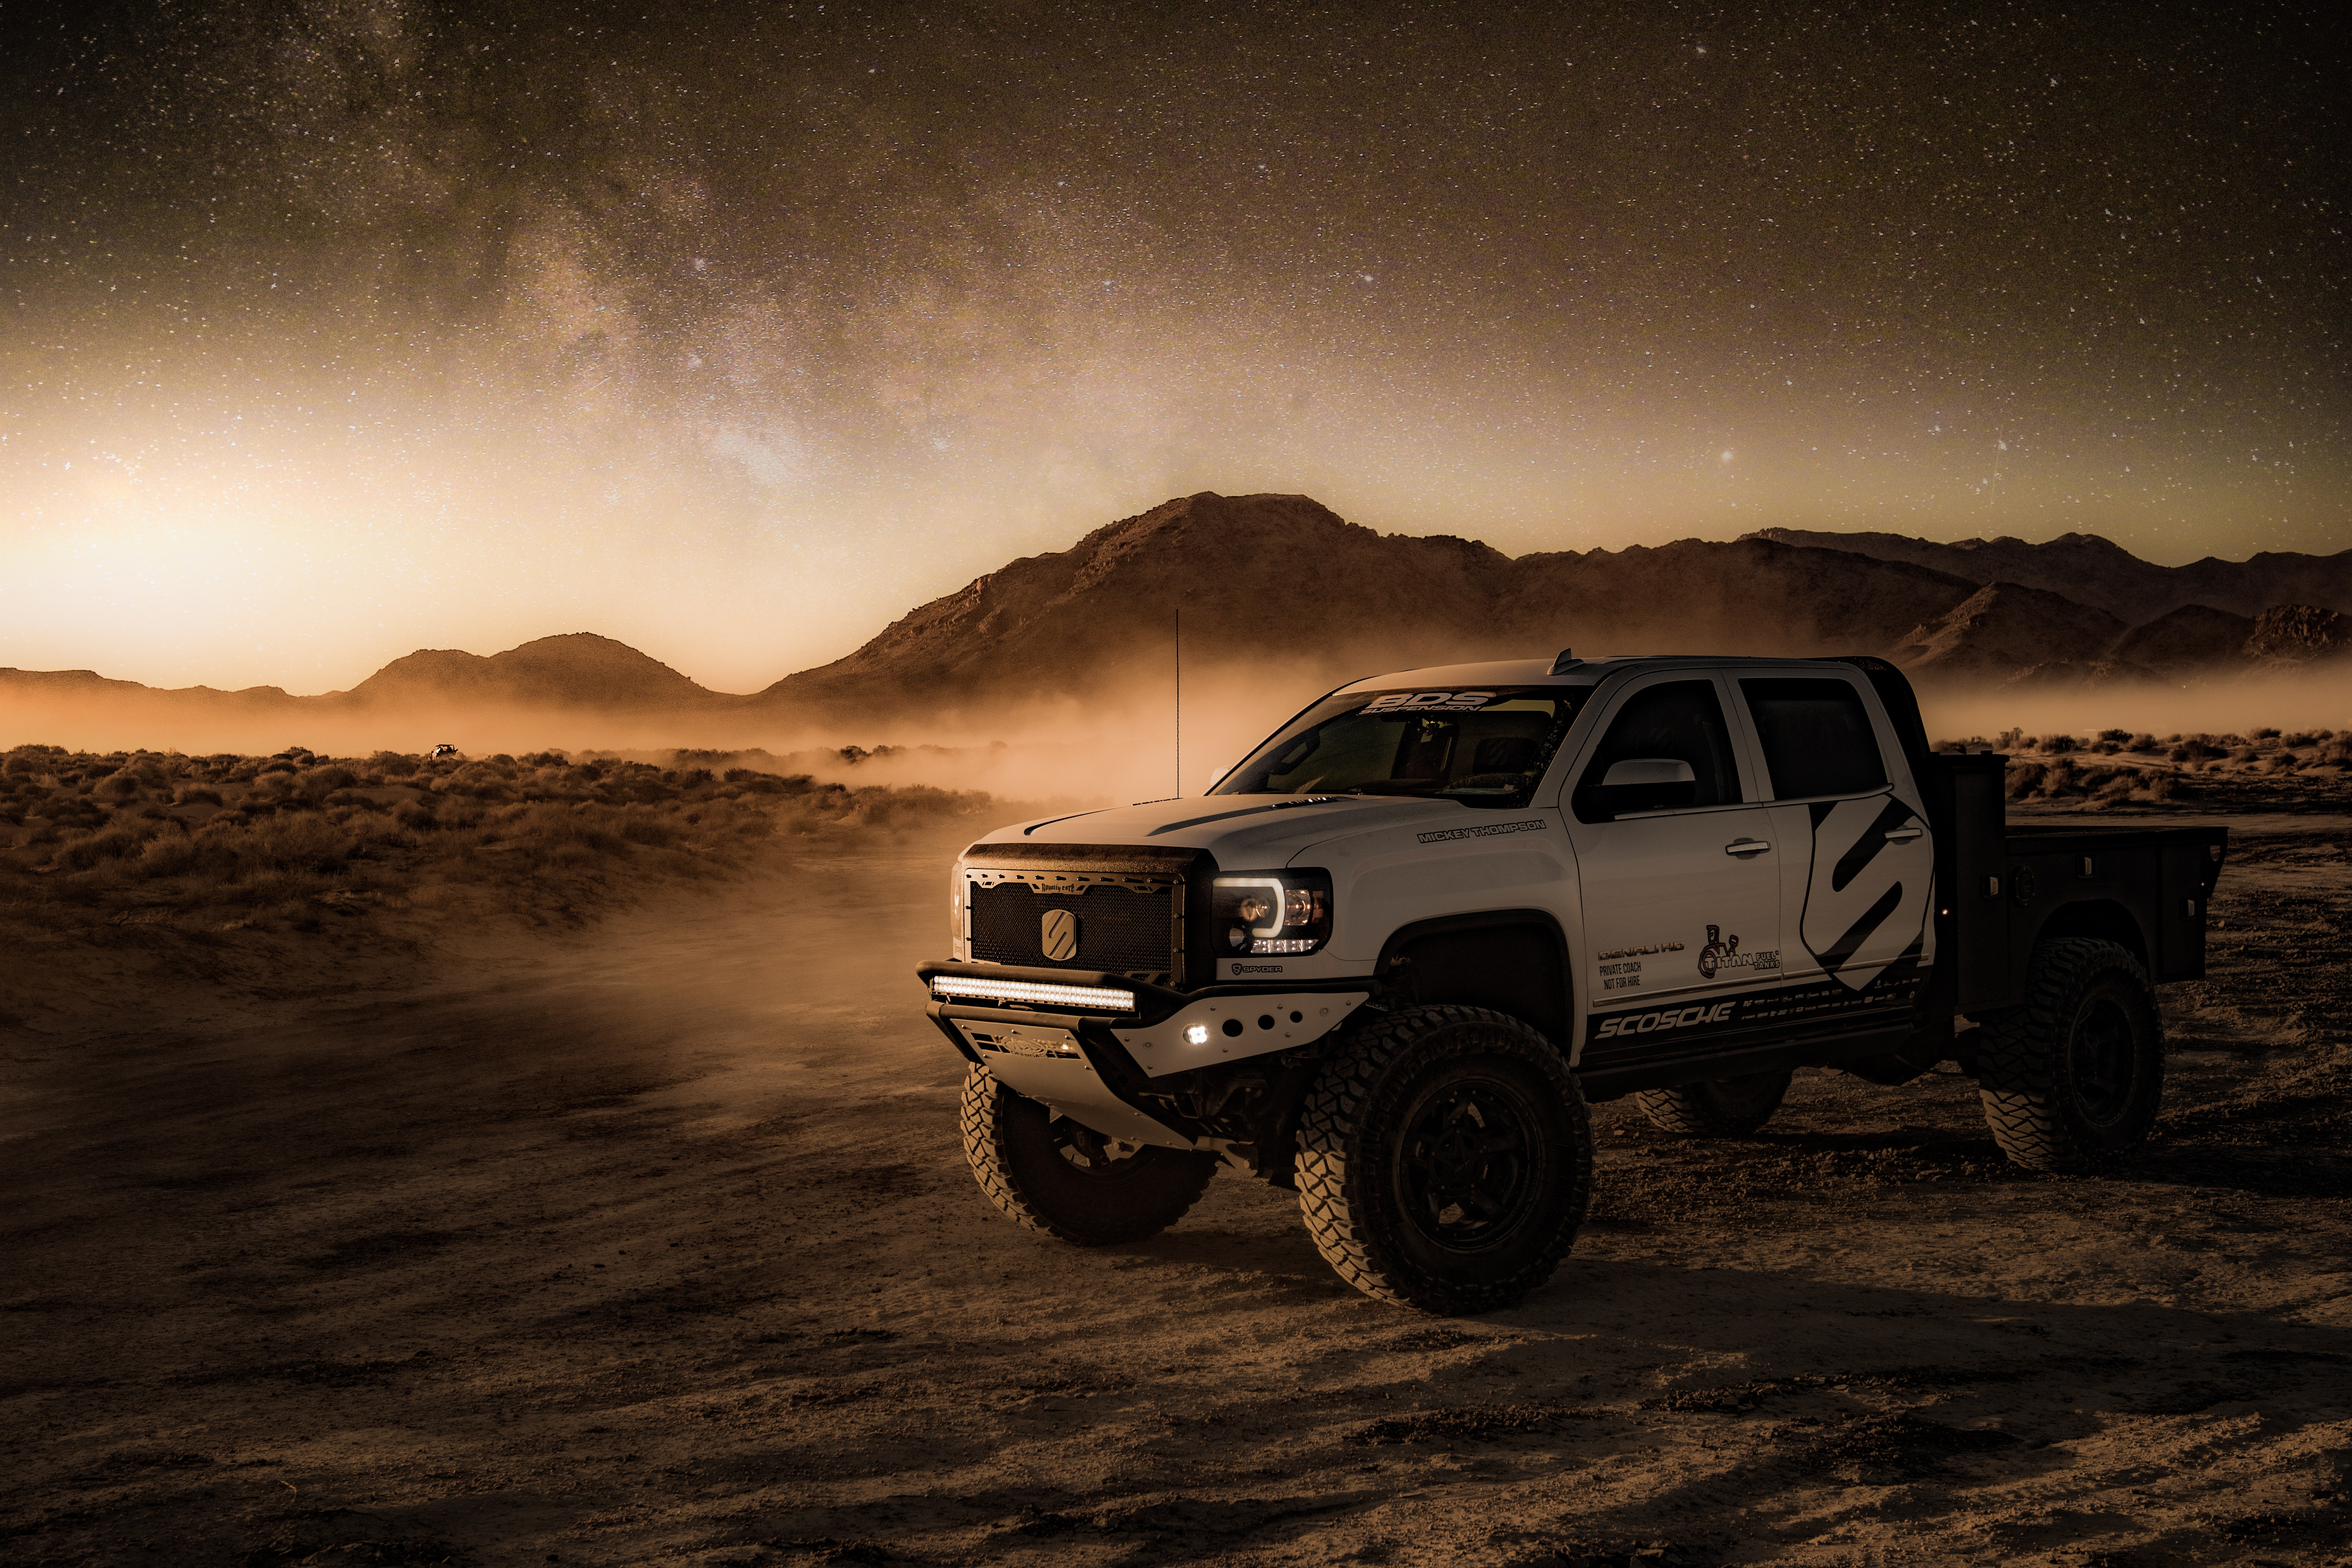 Pick up Truck in the dessert